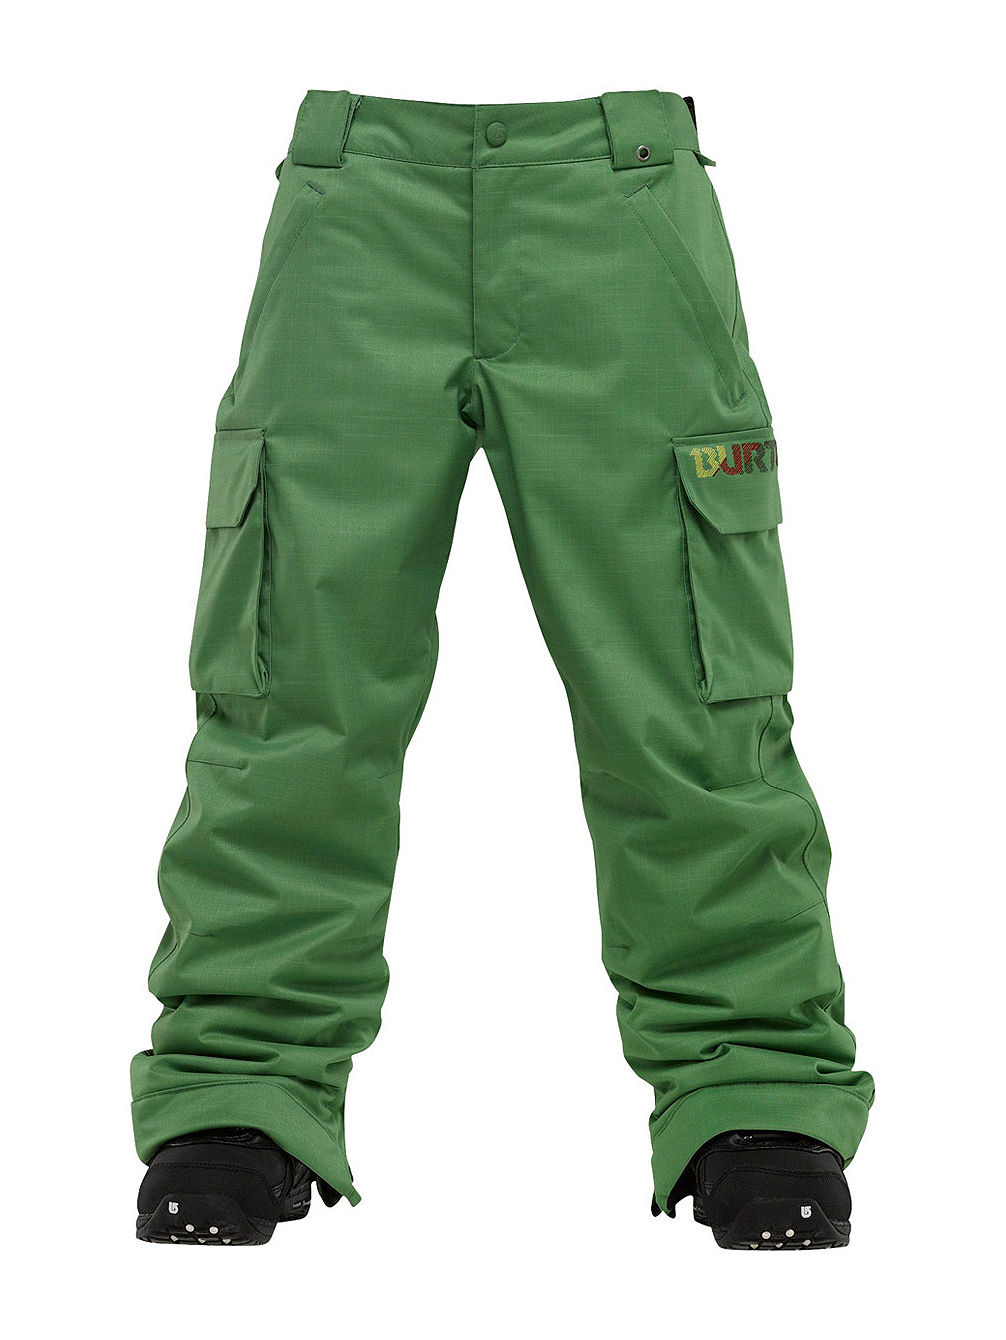 Exile Cargo Pant youth